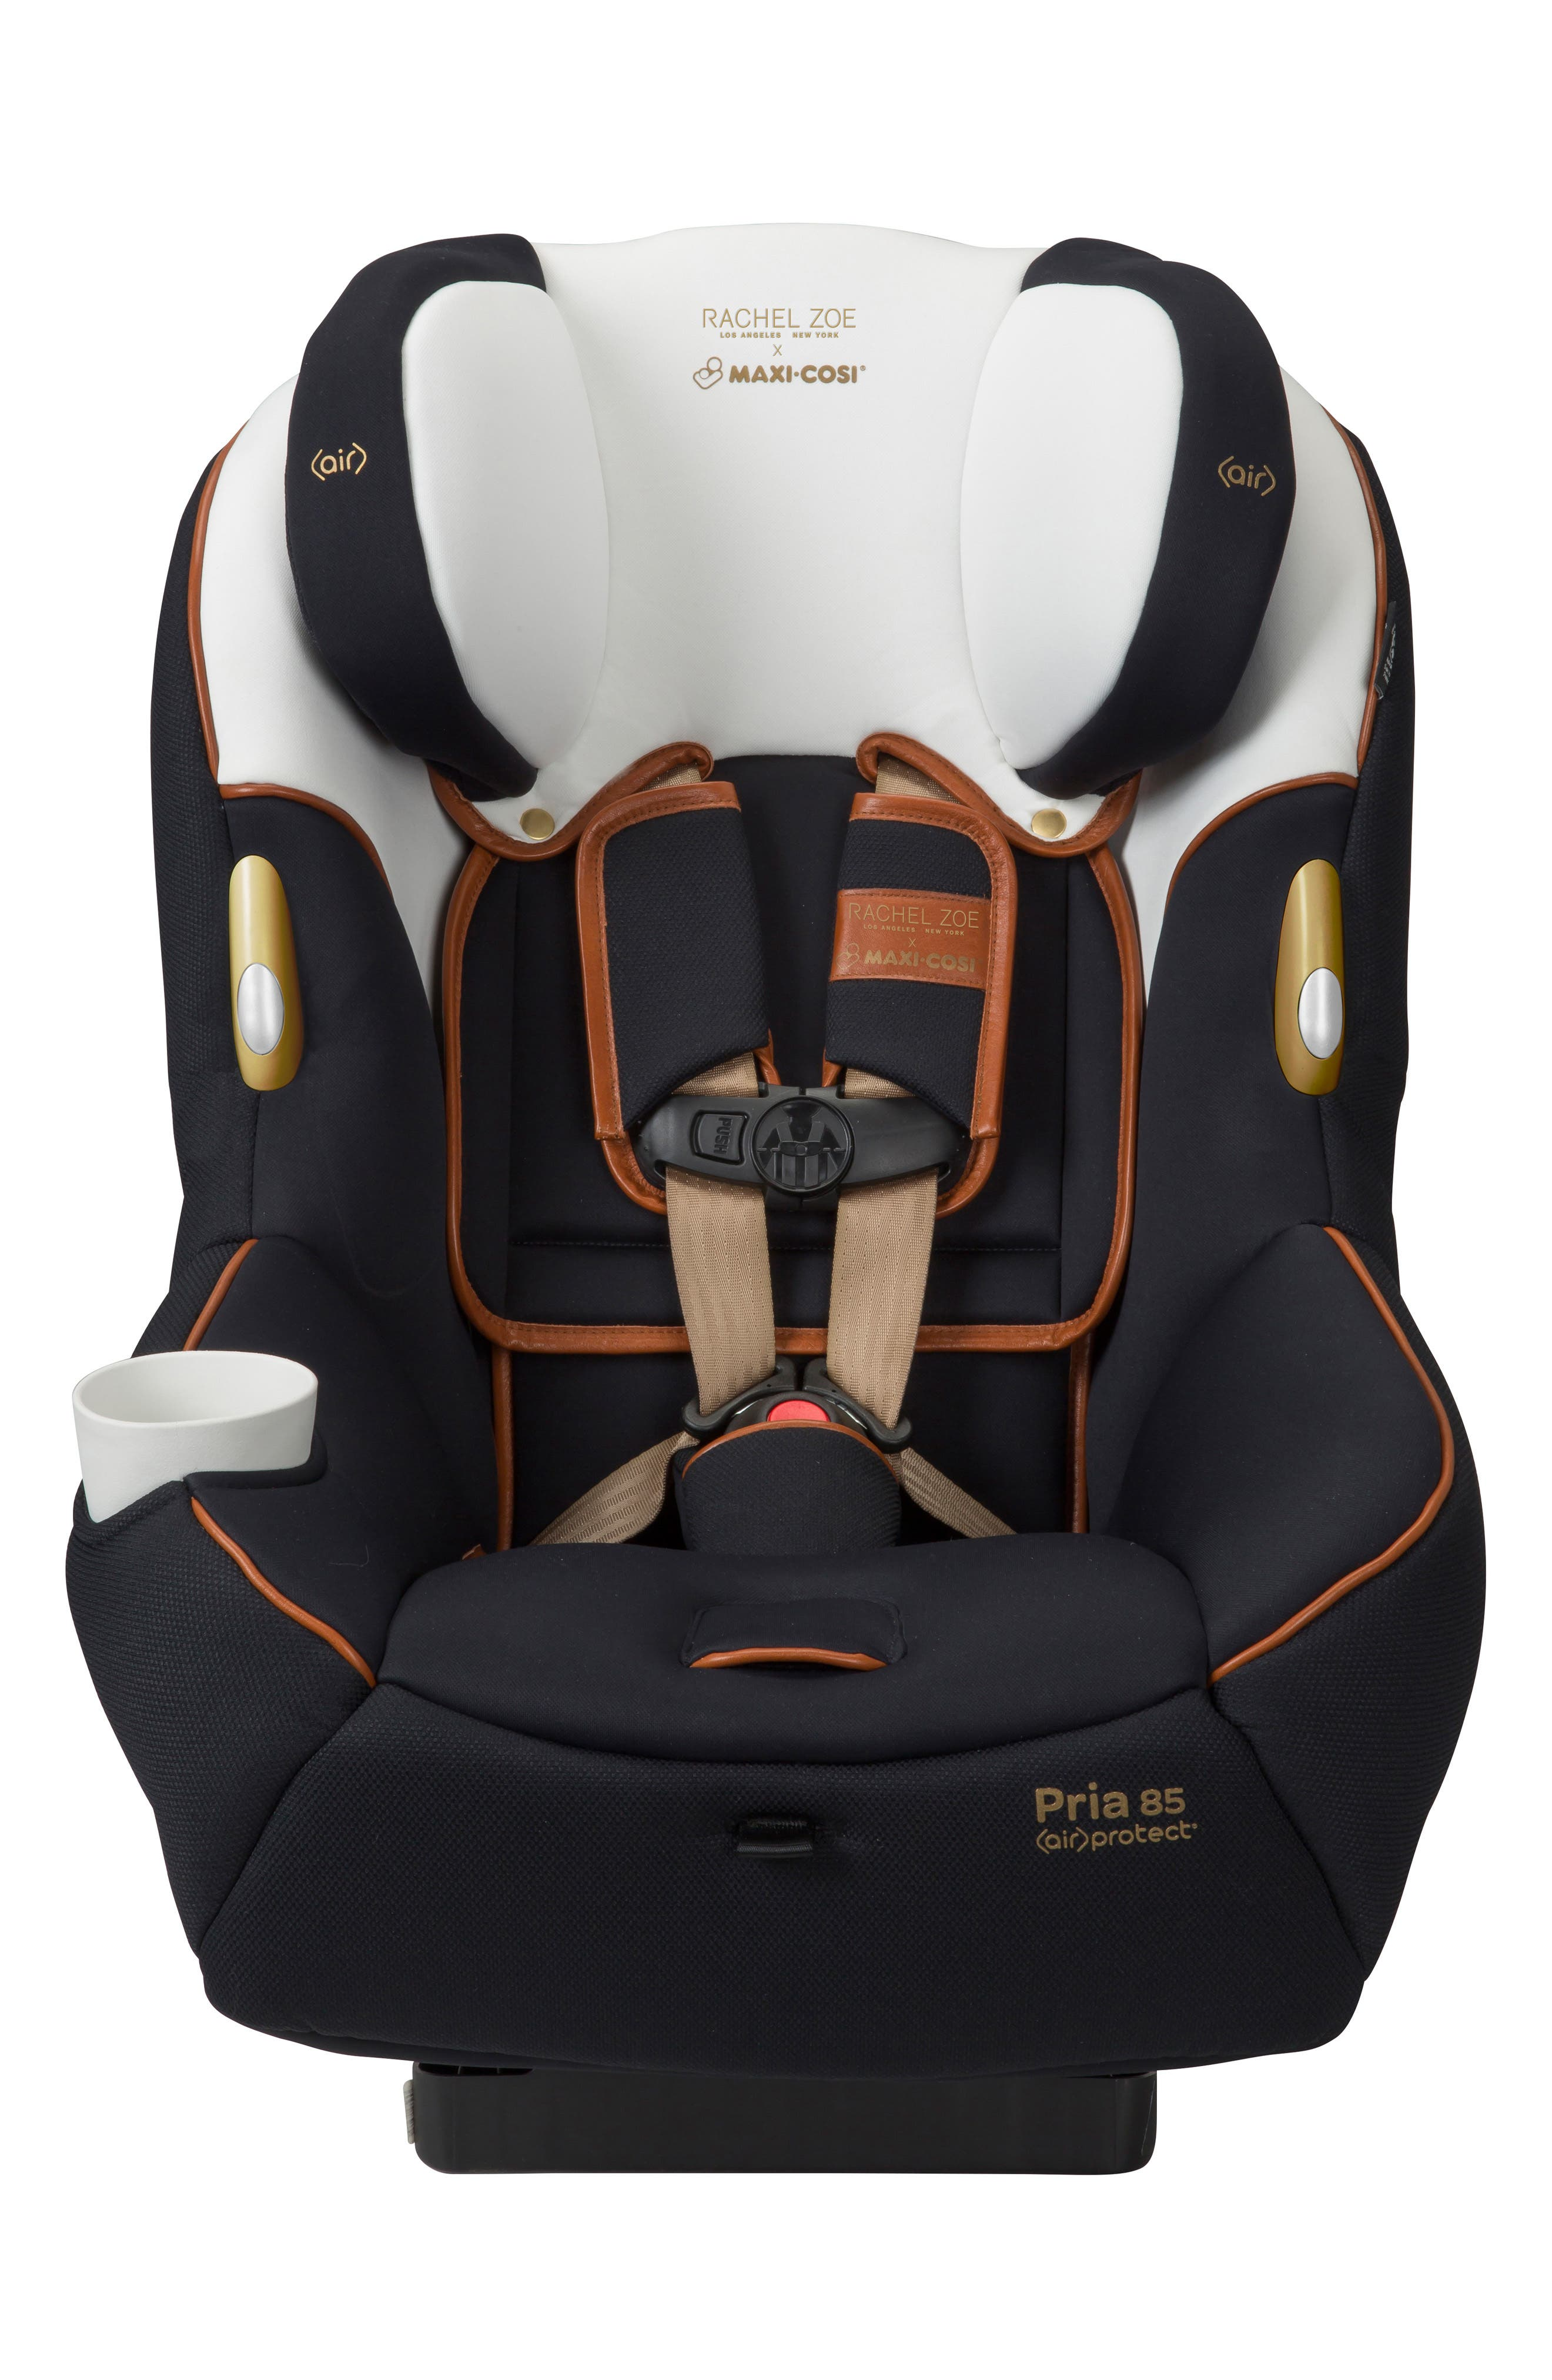 x Rachel Zoe Pria<sup>™</sup> 85 - Special Edition Car Seat,                             Alternate thumbnail 4, color,                             005